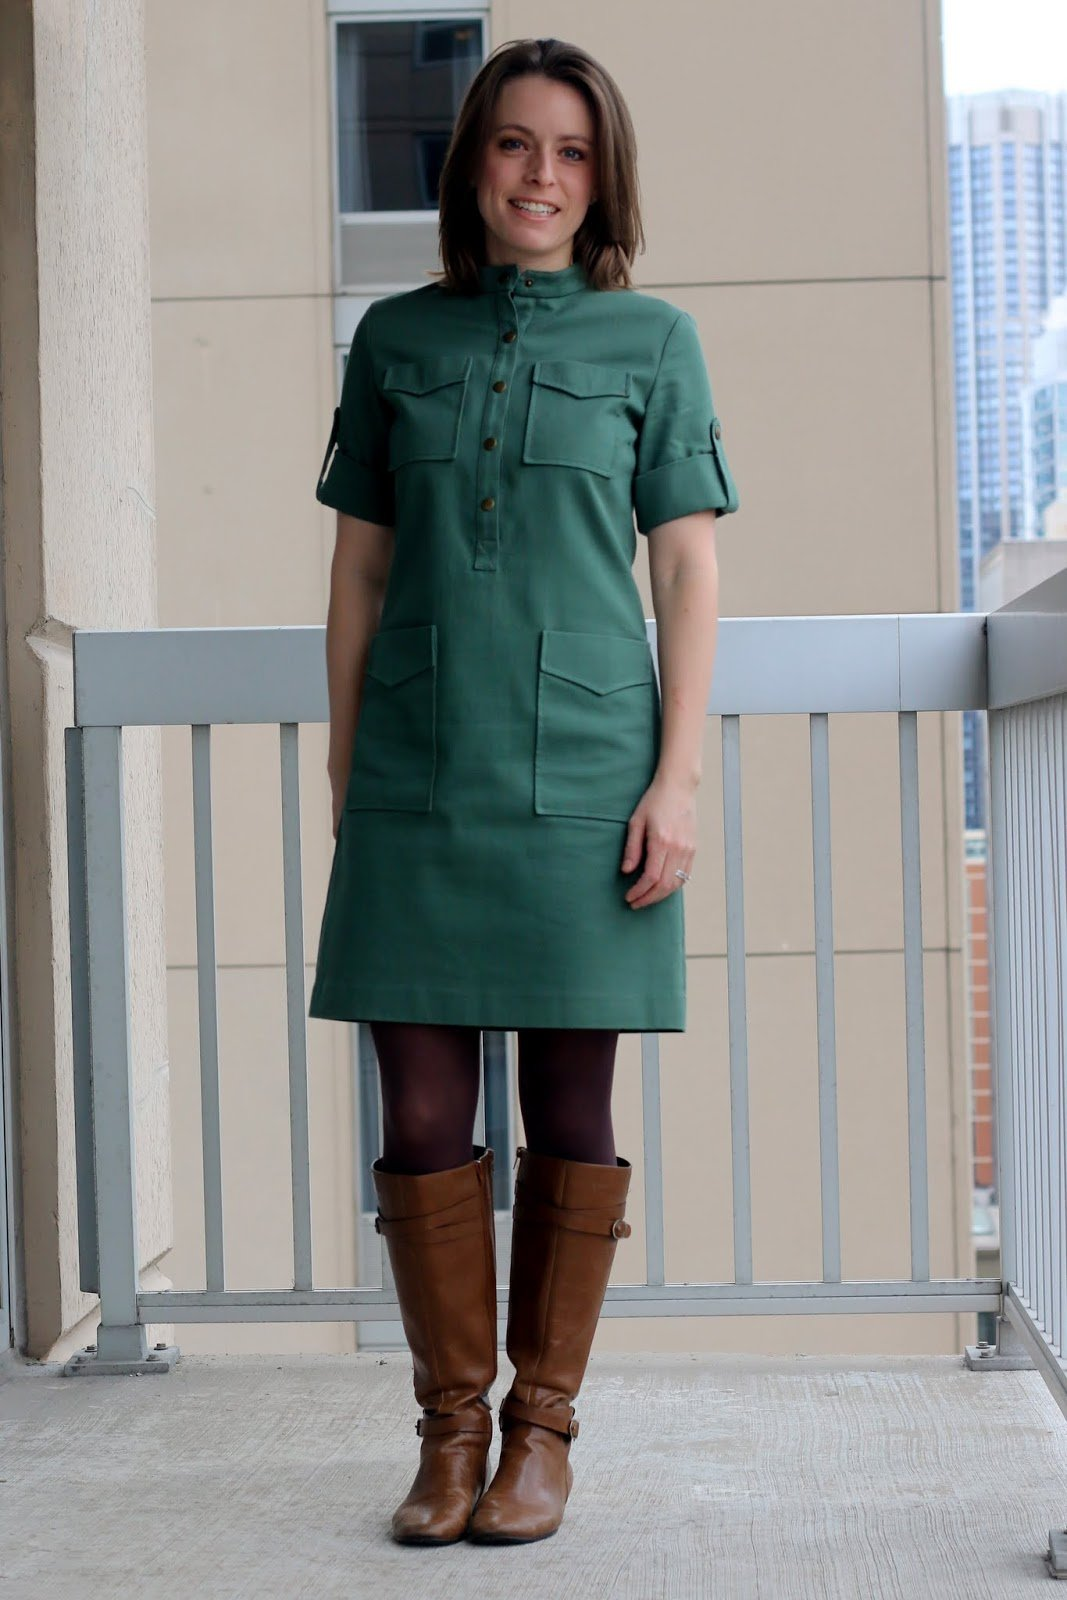 Thrifted Emerson Fry green dress with tights and cognac boots | Made in the USA | wear to work outfit, office style, business casual to brunch